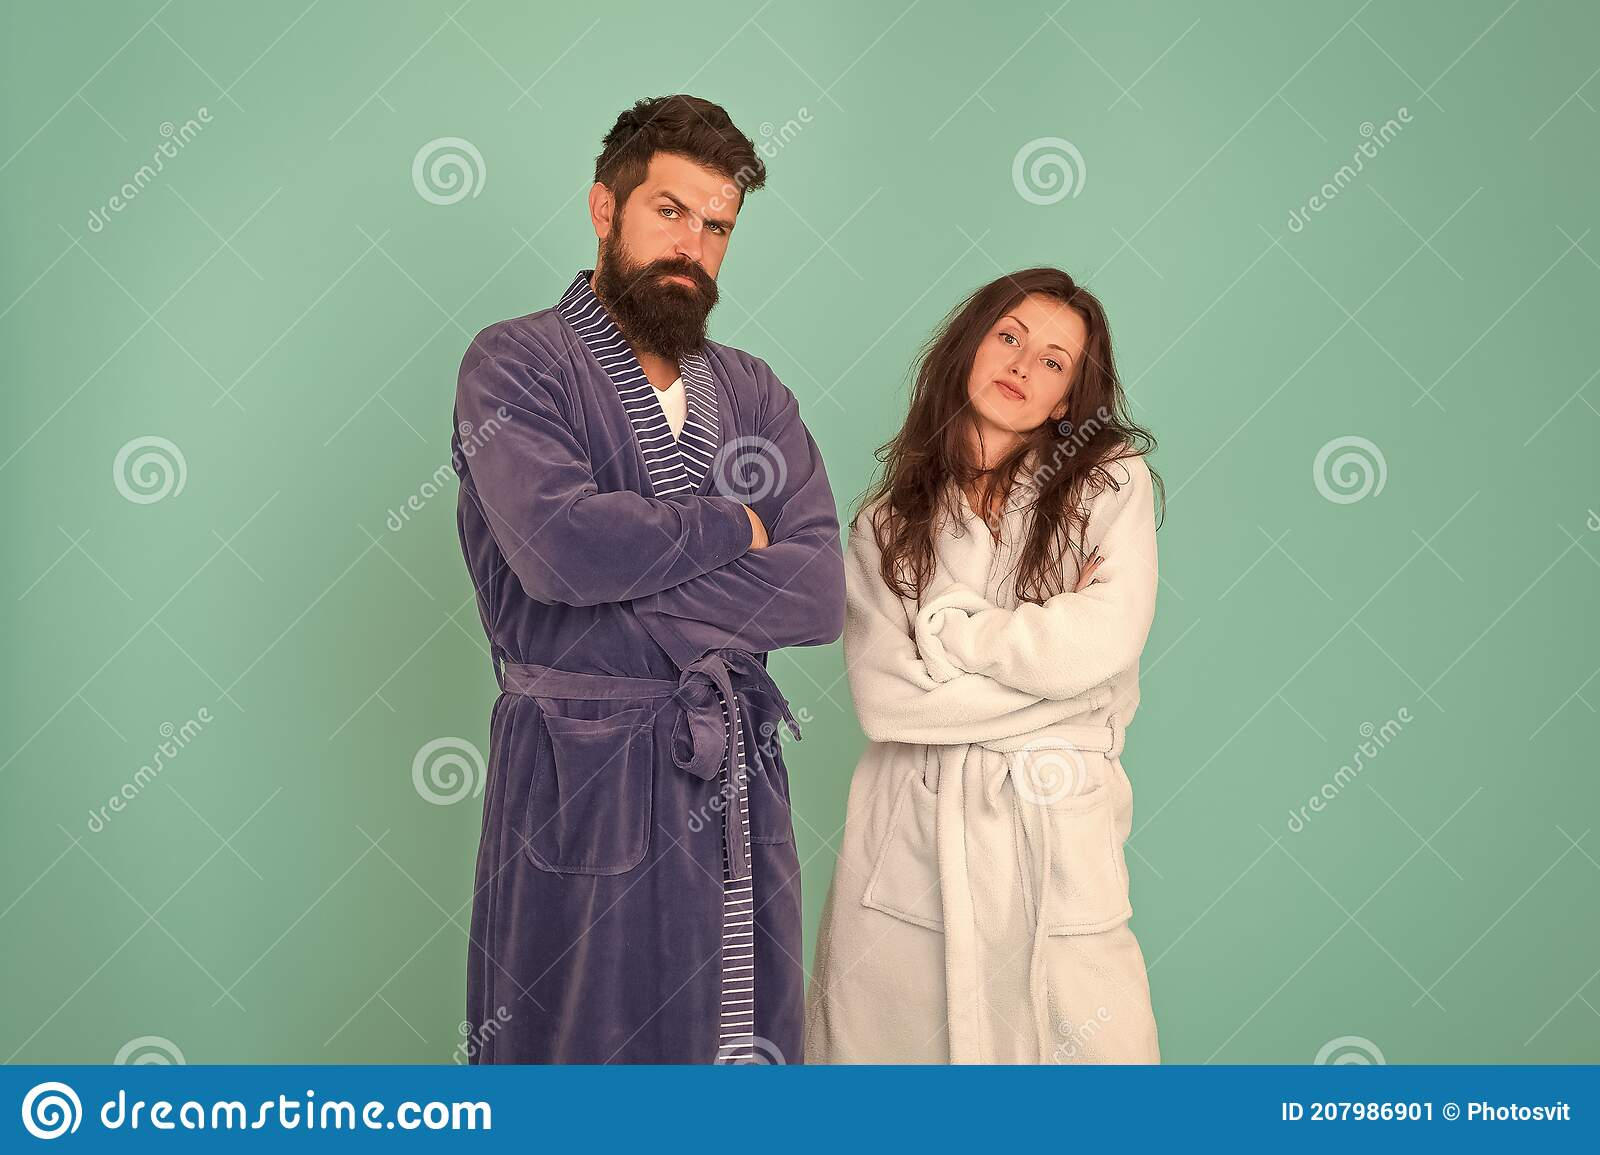 266 Cozy Bathrobes Photos Free Royalty Free Stock Photos From Dreamstime